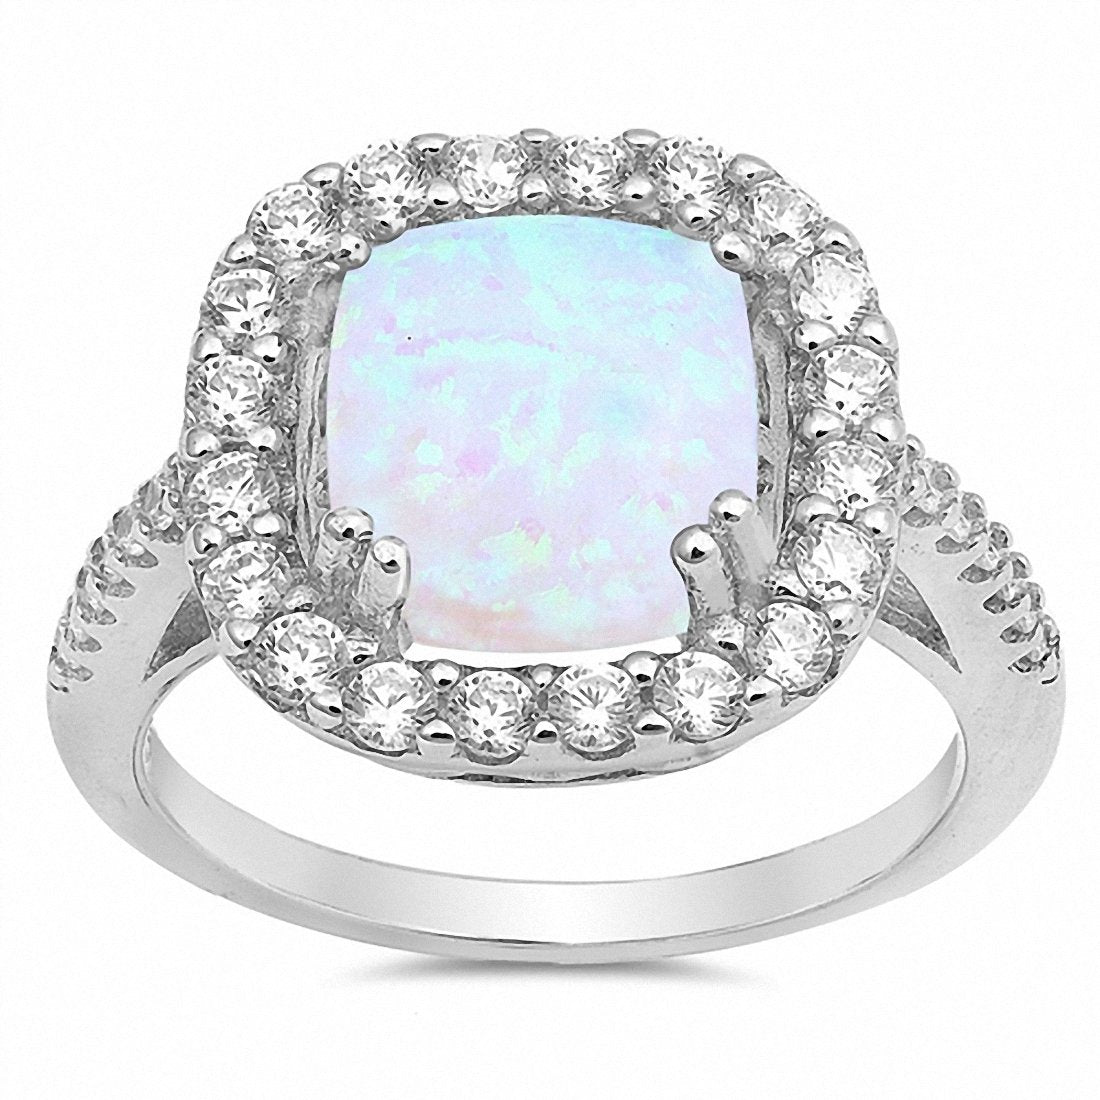 Halo Ring Princess Cut Lab Created White Opal 925 Sterling Silver